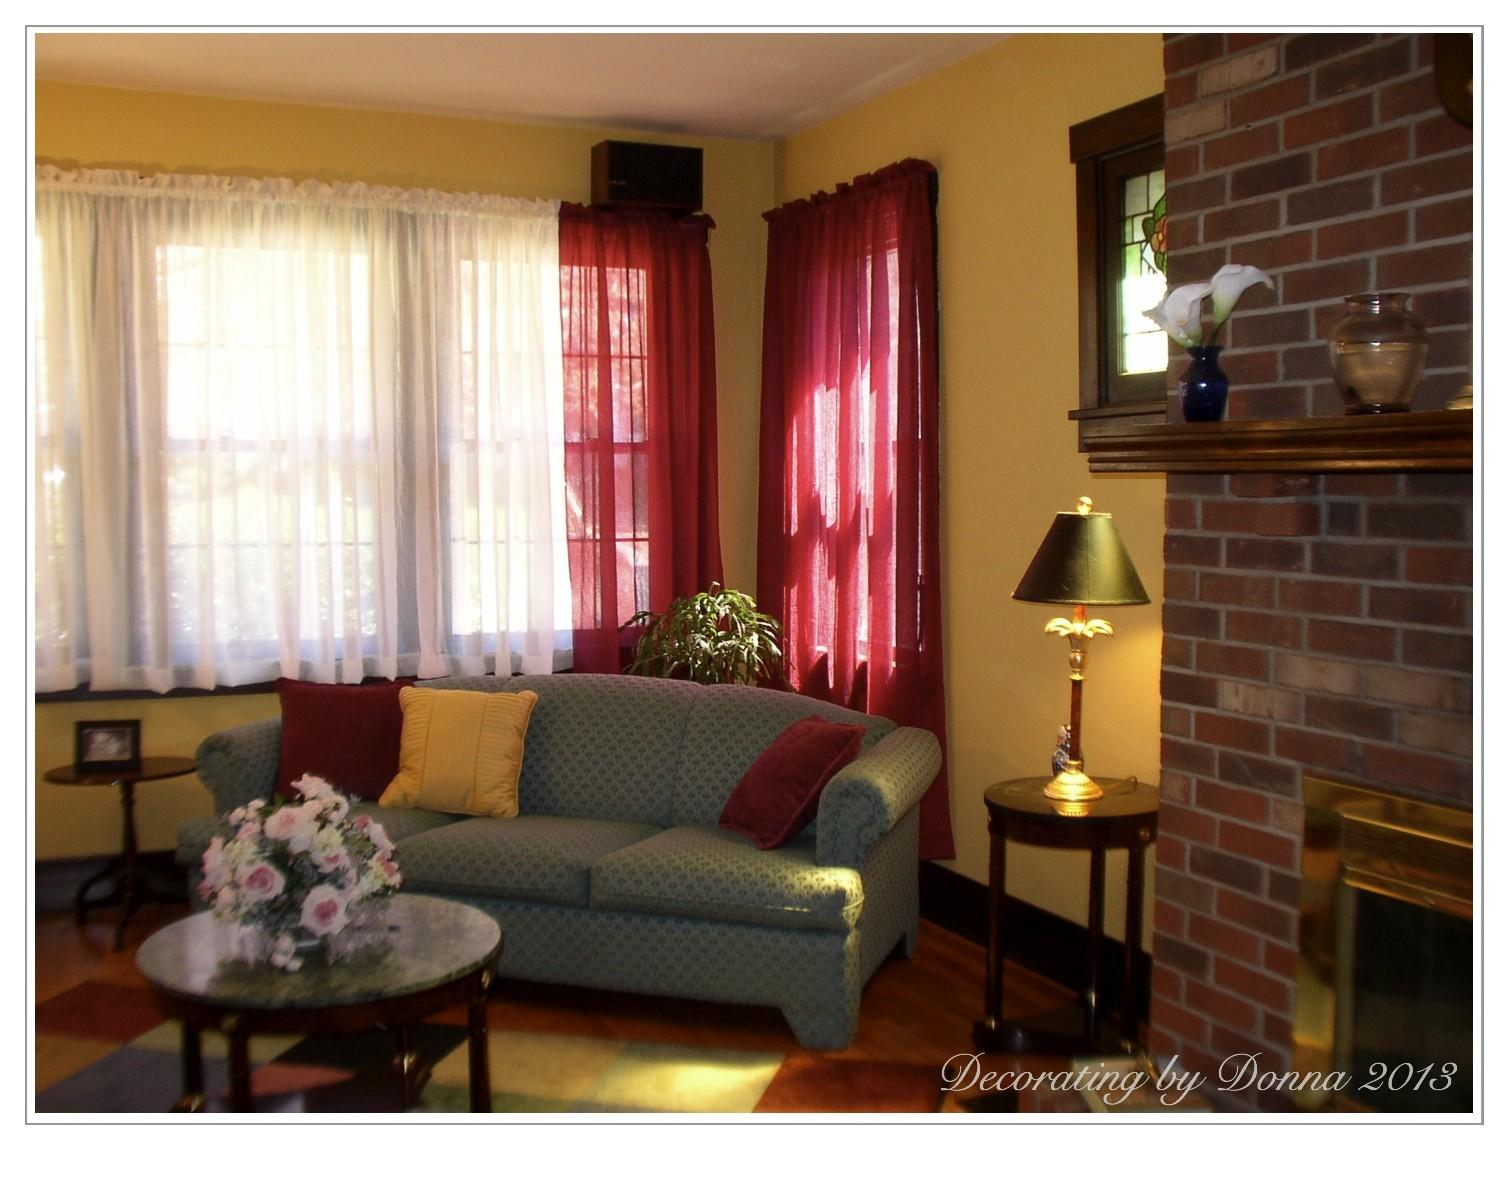 Stir Sherwin Williams Bring Color Into Small Spaces